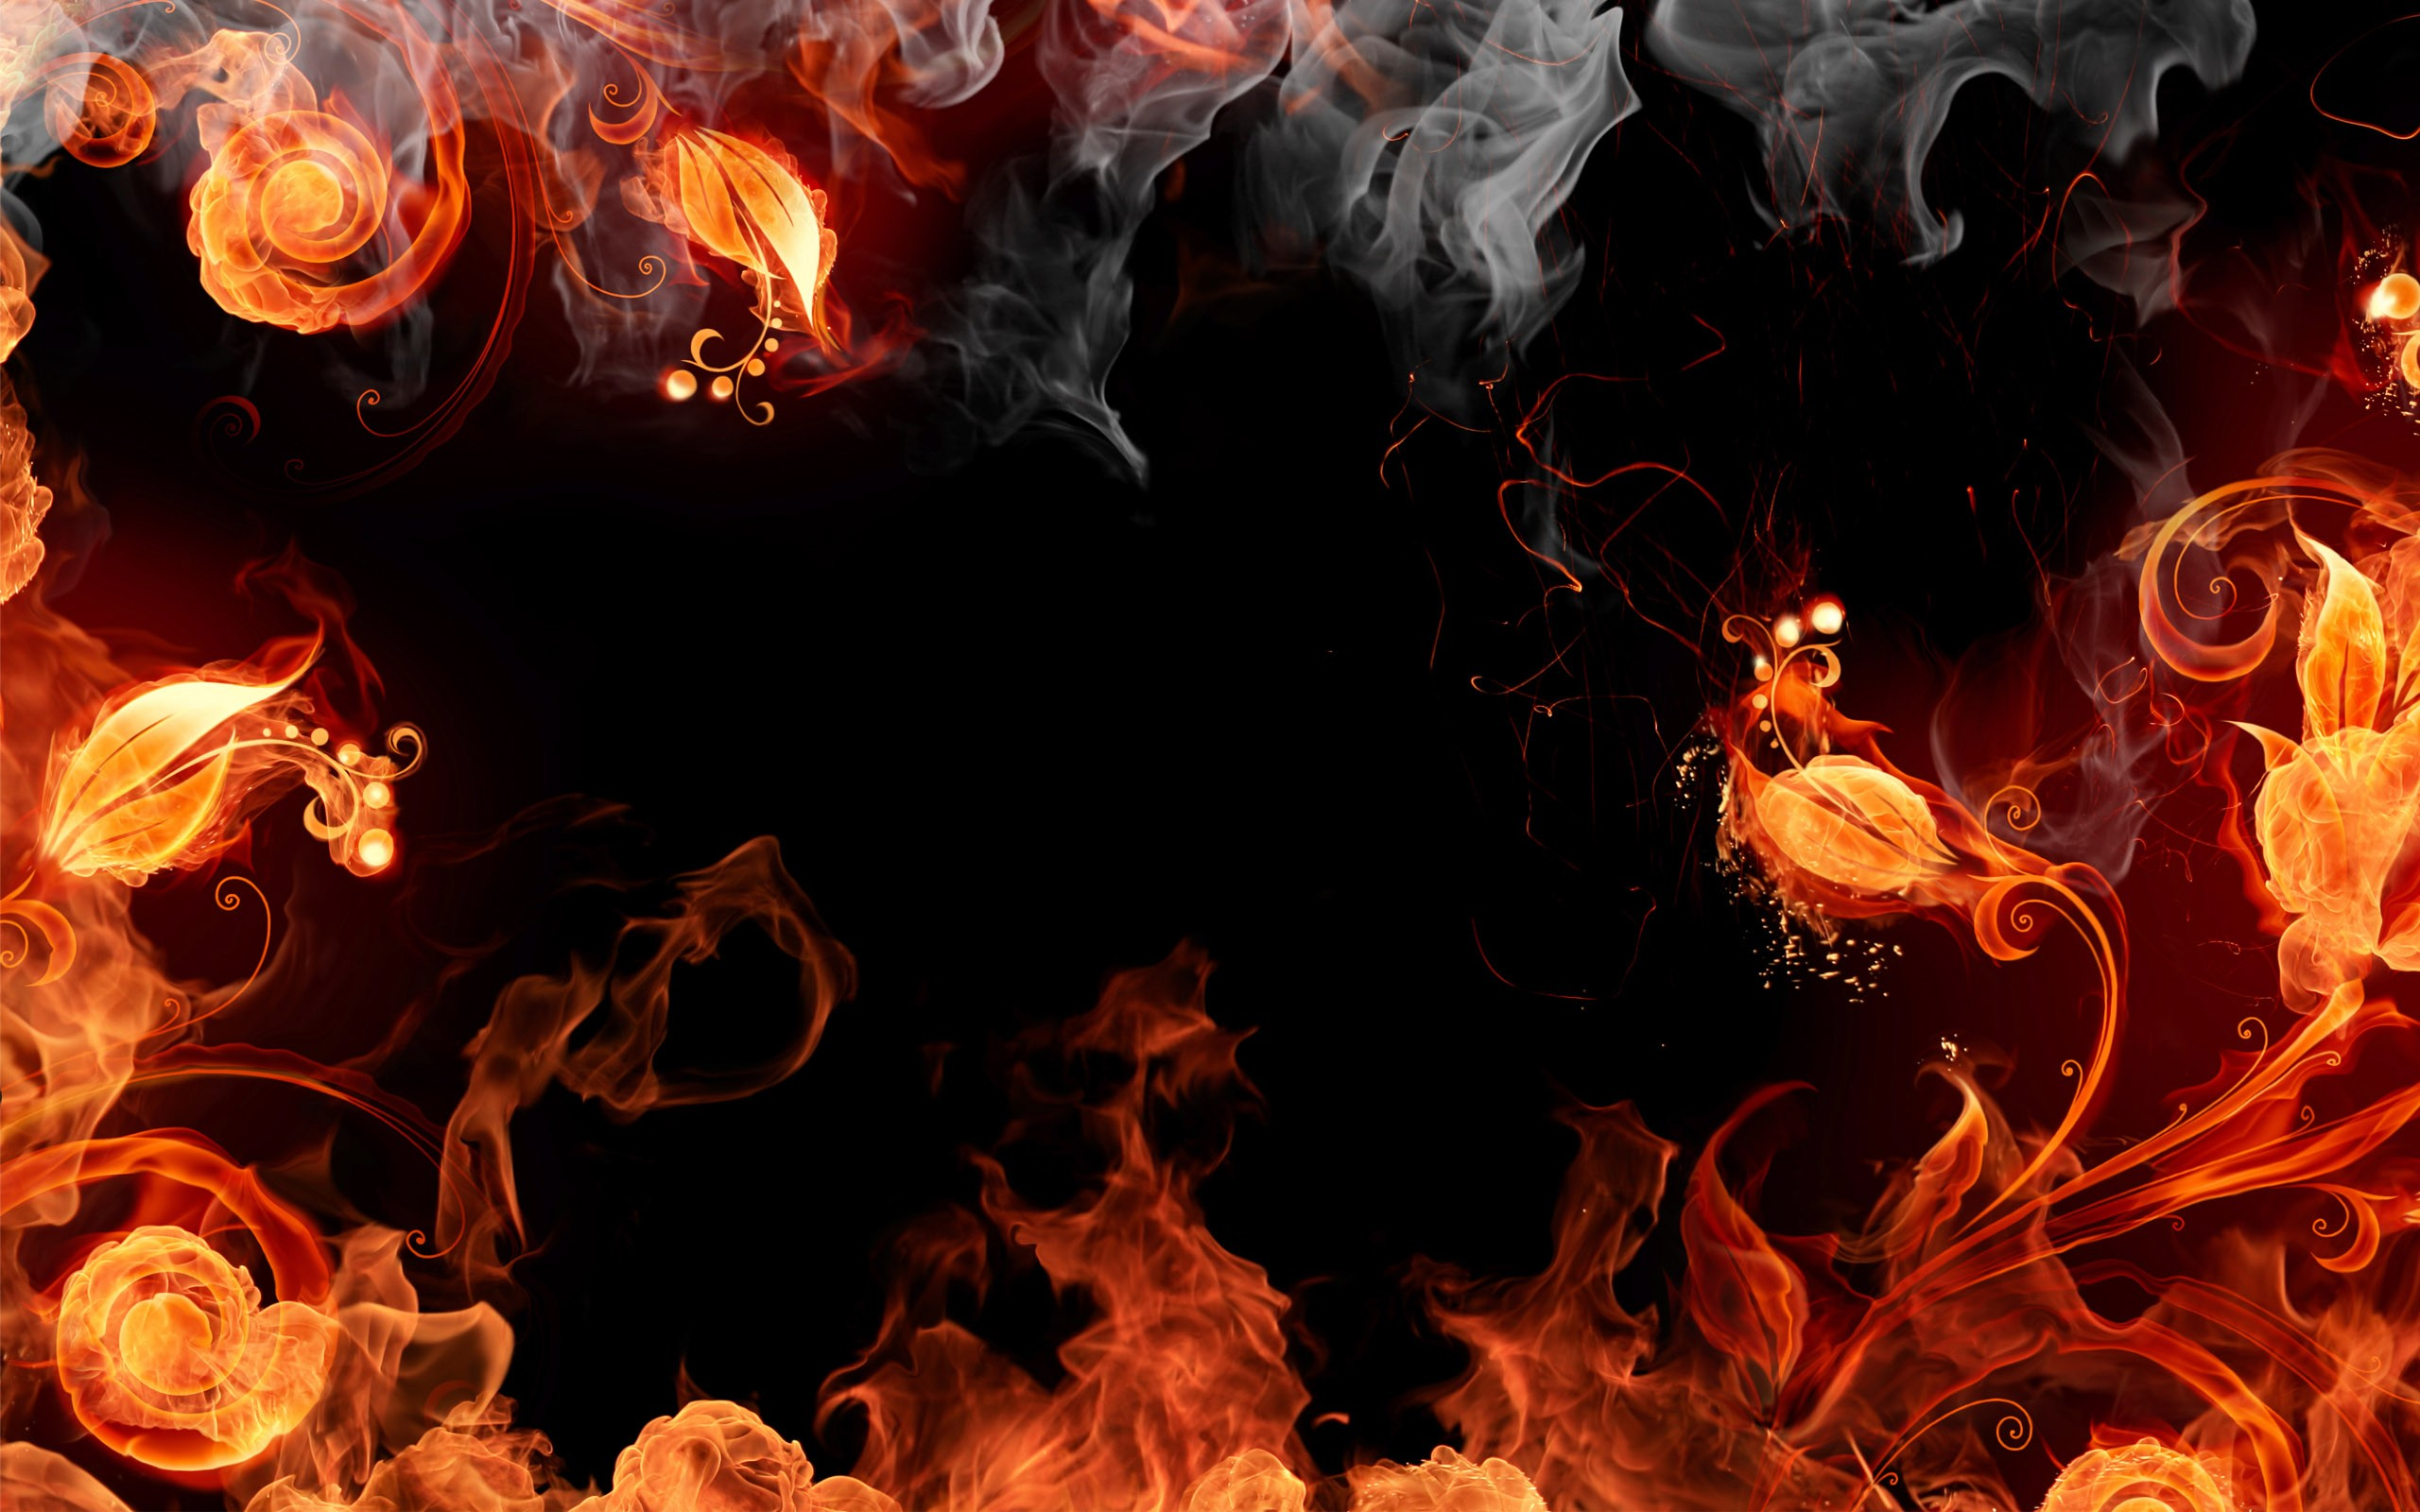 Flames Wallpaper